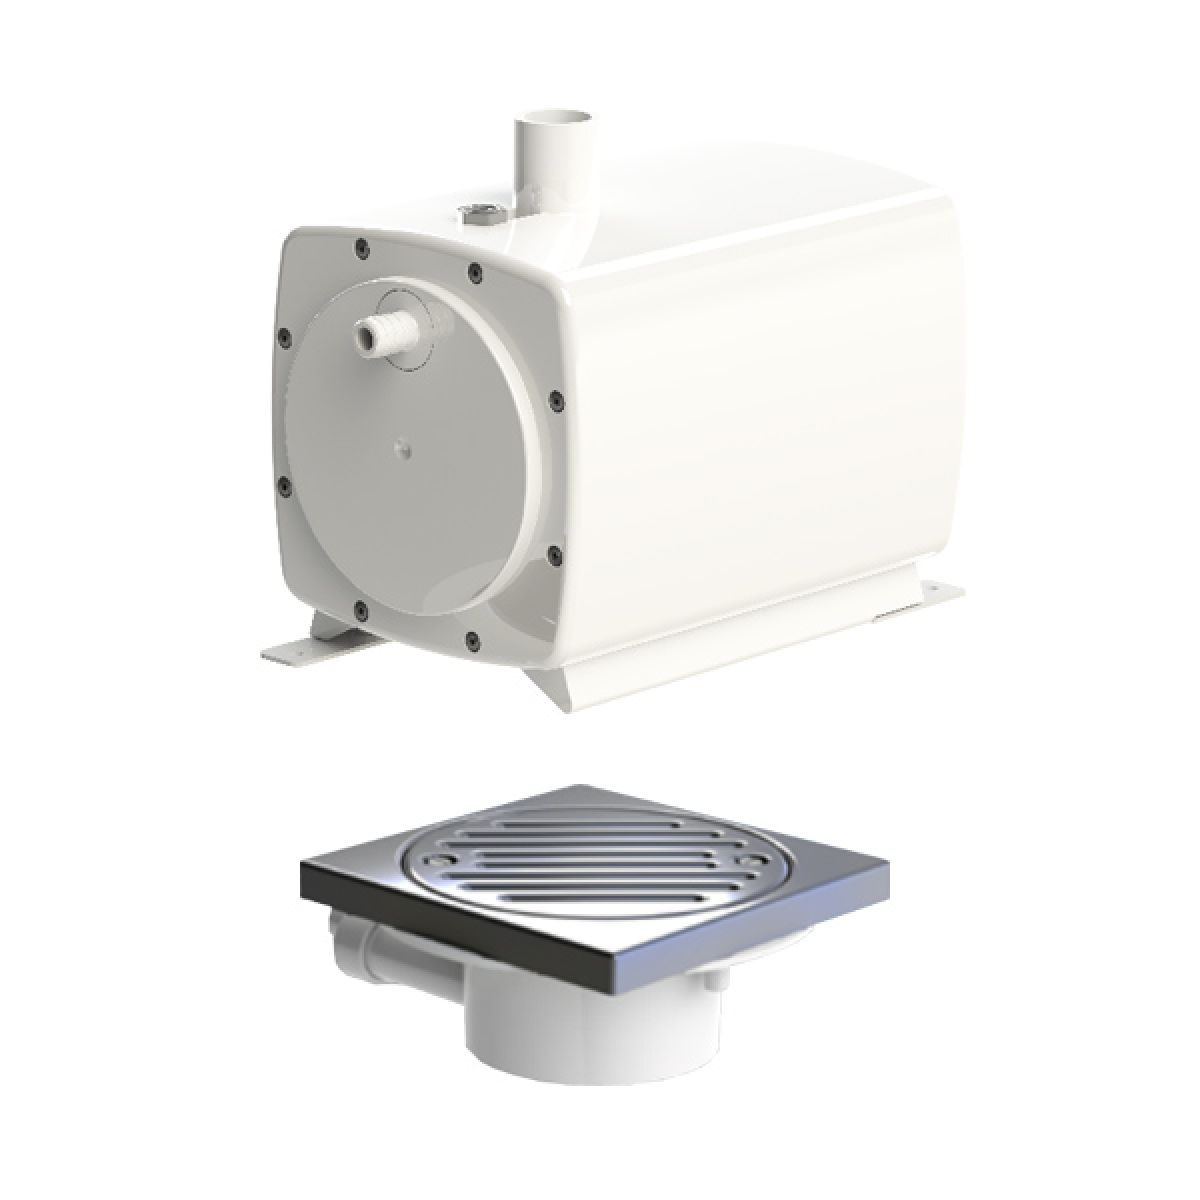 Sanifloor 1 Macerator Pump for Tiled Flooring